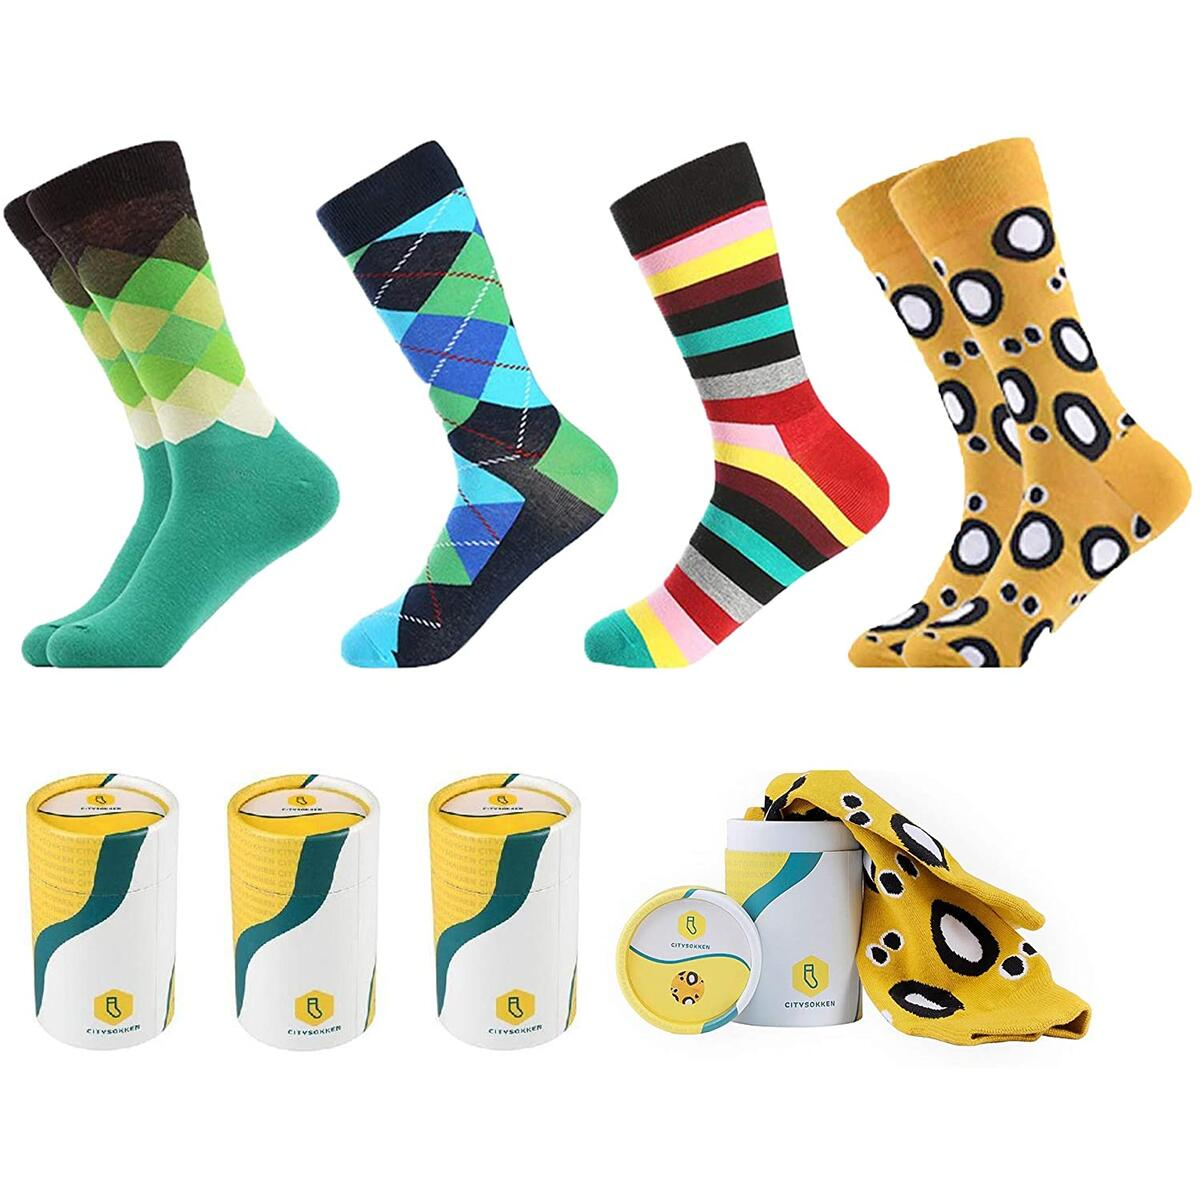 Premium Quality Mens Colorful Fun Socks | by CitySokken. With Hard Case Designed Boxes. Rebate valid only for color: Argyle-2